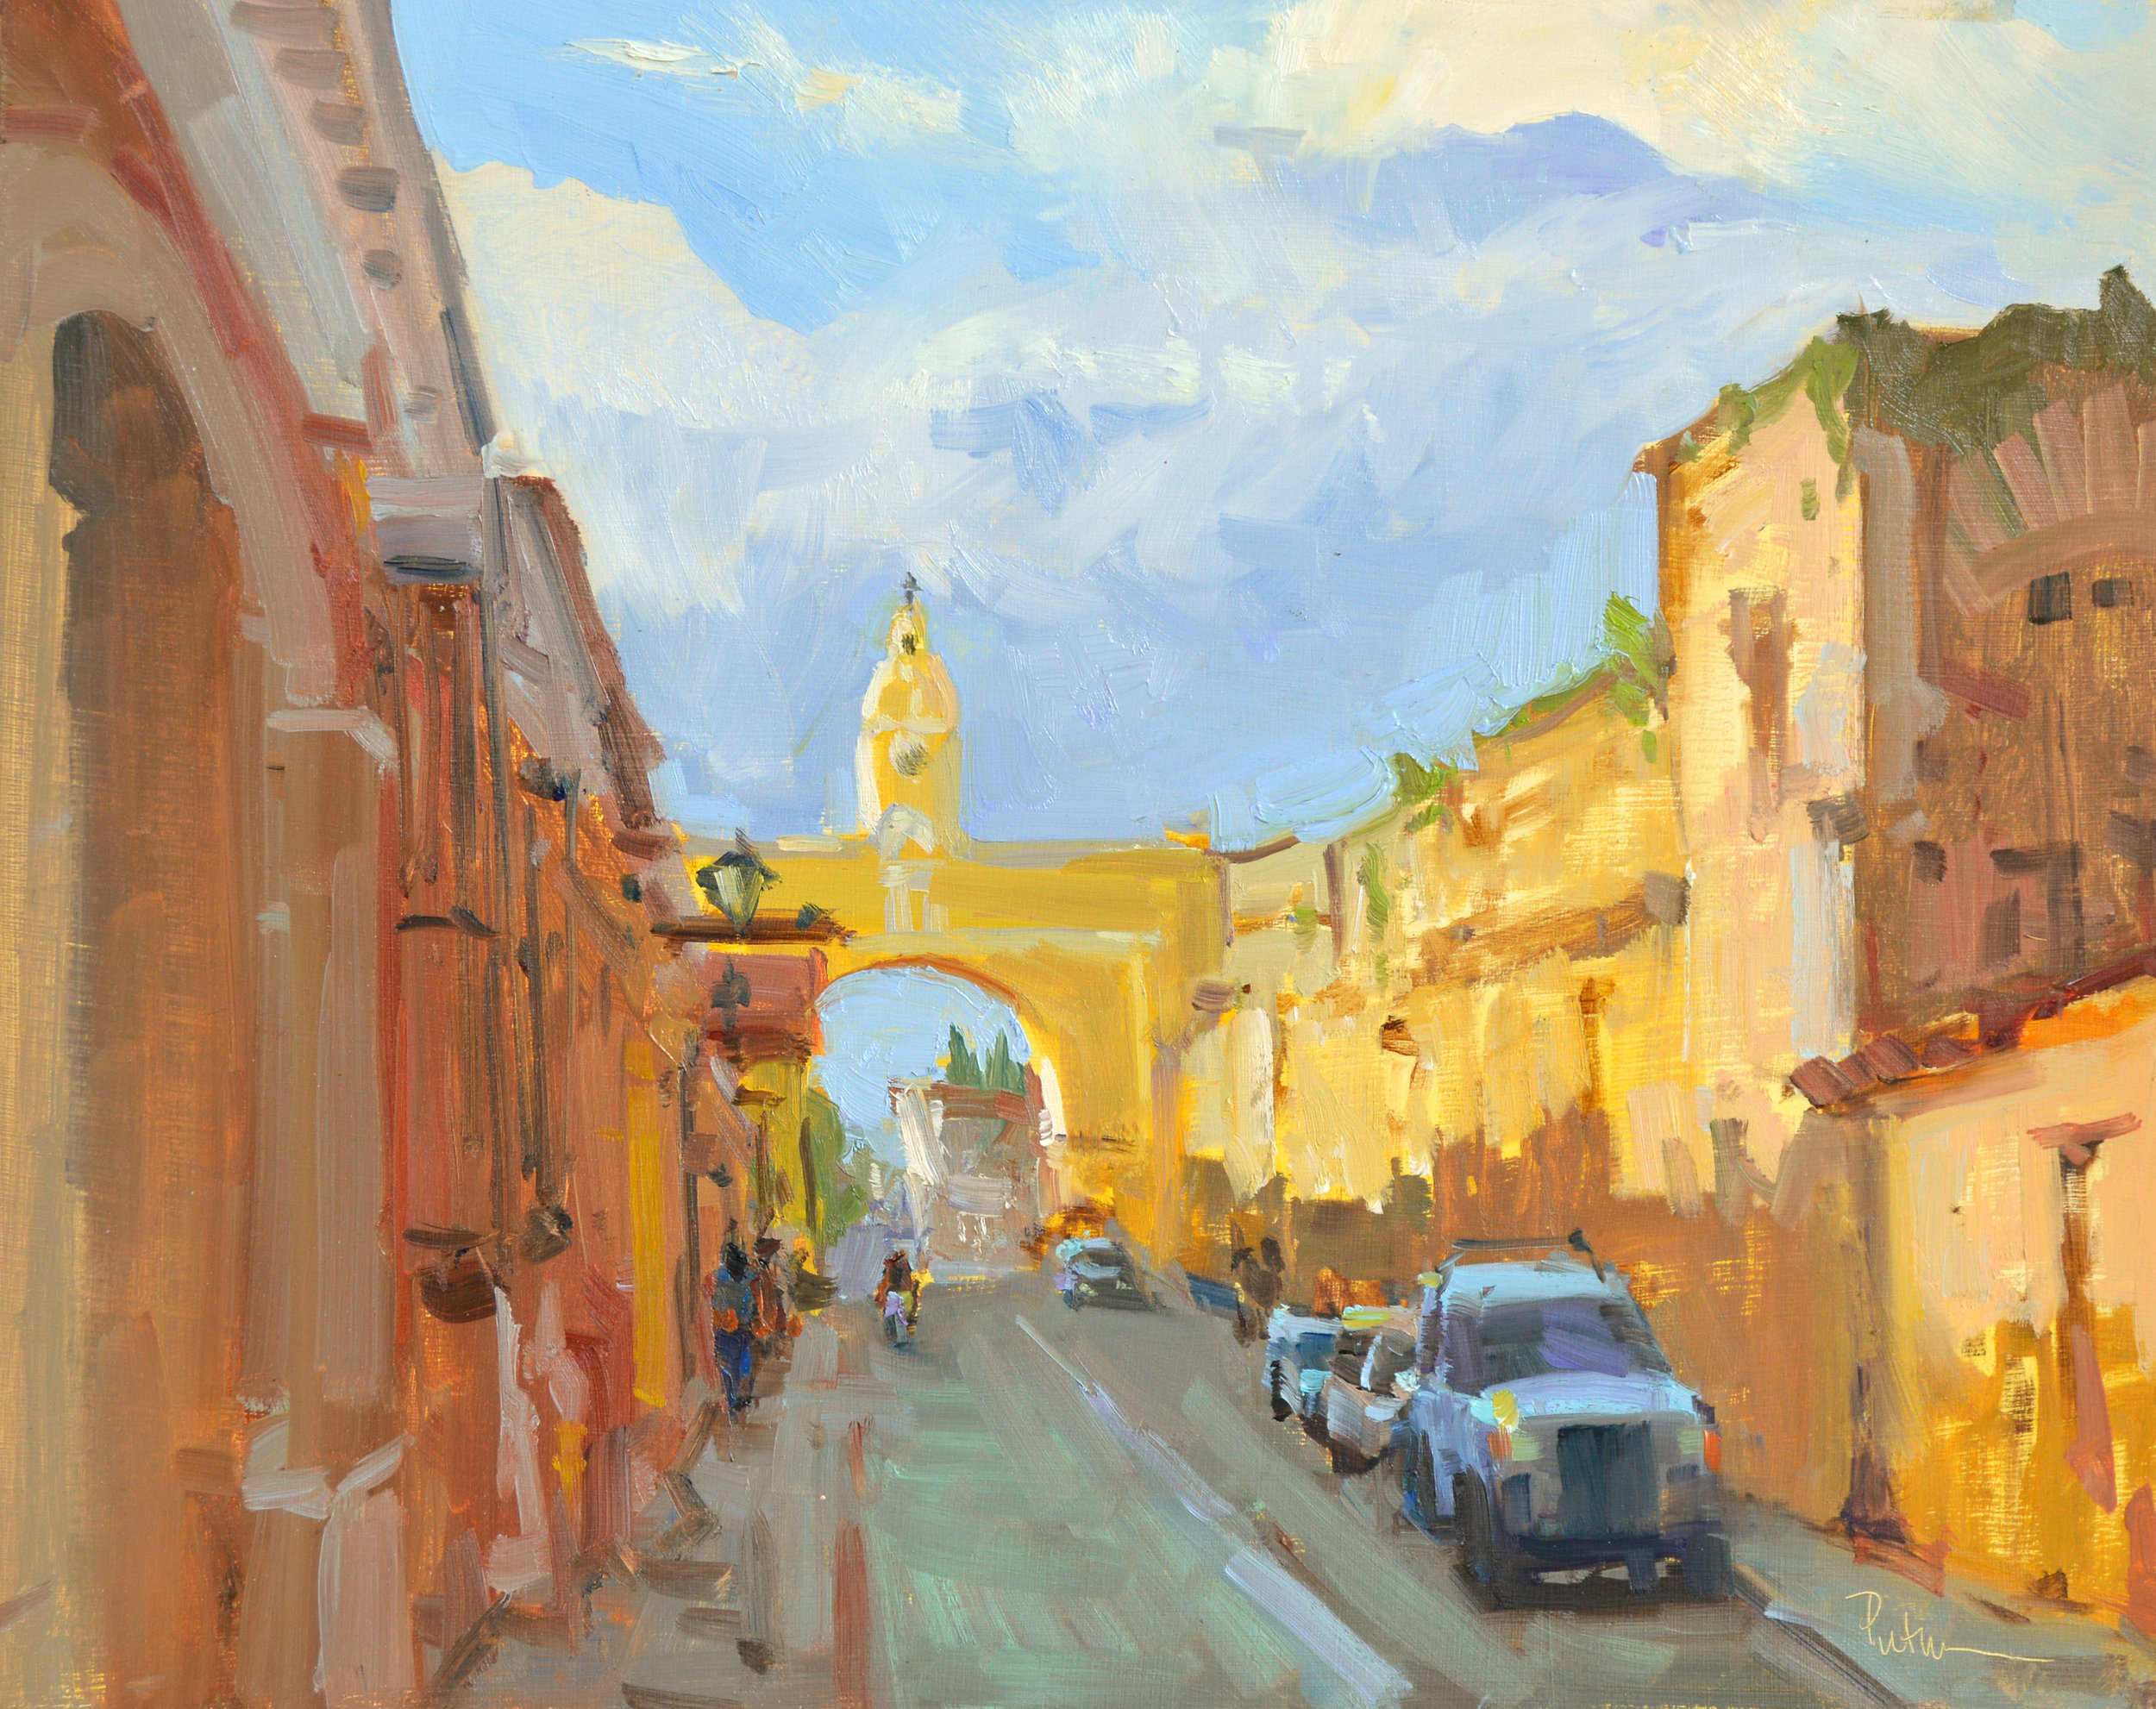 On the RoadOutdoor Painter,February/March 2019 - Arch of Antigua, 11x14